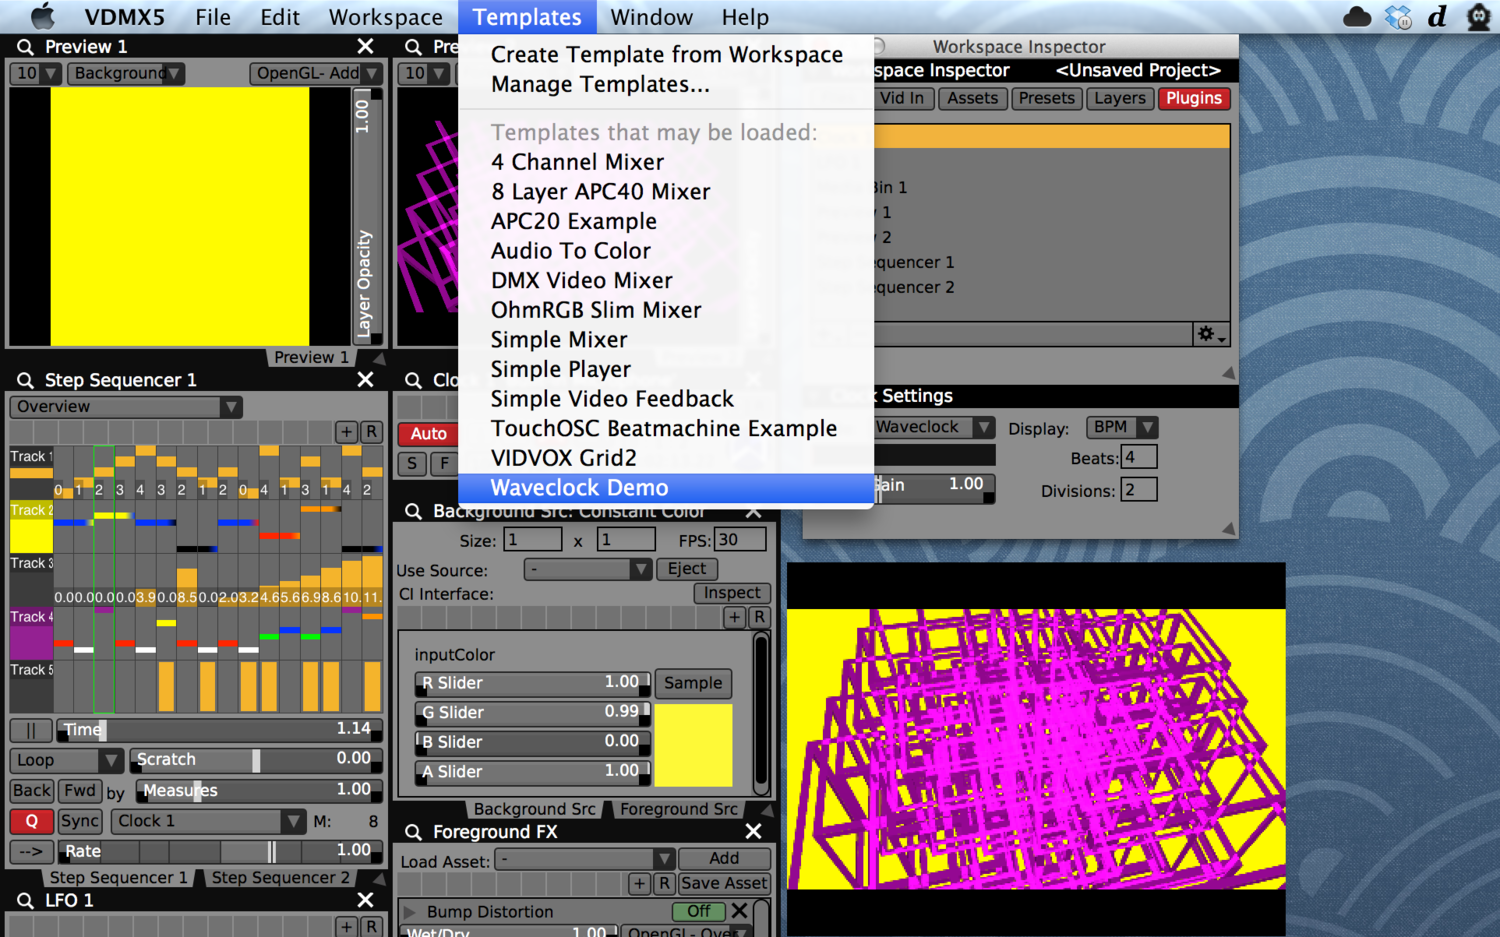 Automatic BPM detection in VDMX keeps visuals in sync with music.